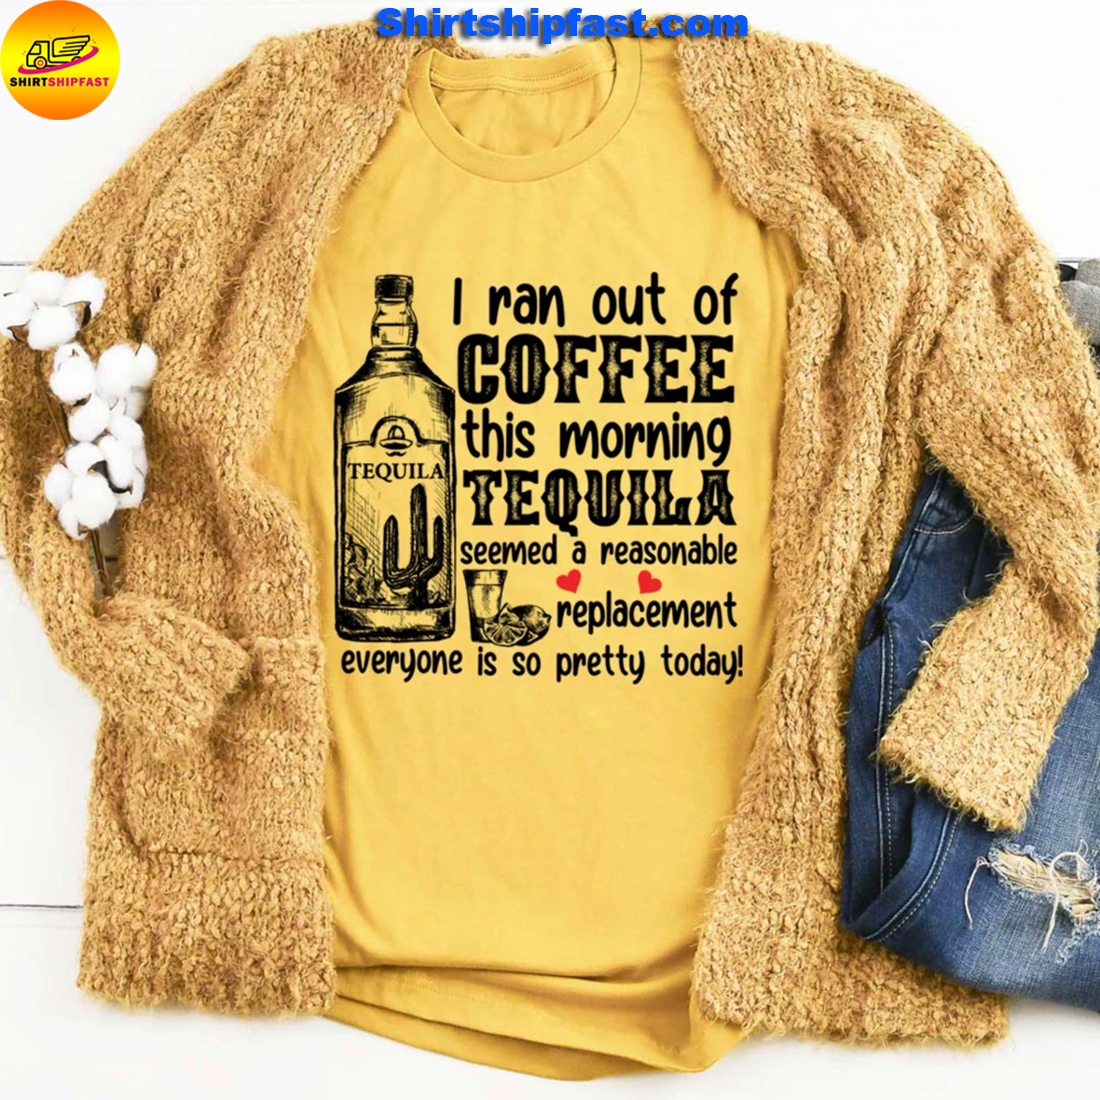 I ran out of coffee this morning tequila seemed a reasonable replacement everyone is so pretty today - Yellow